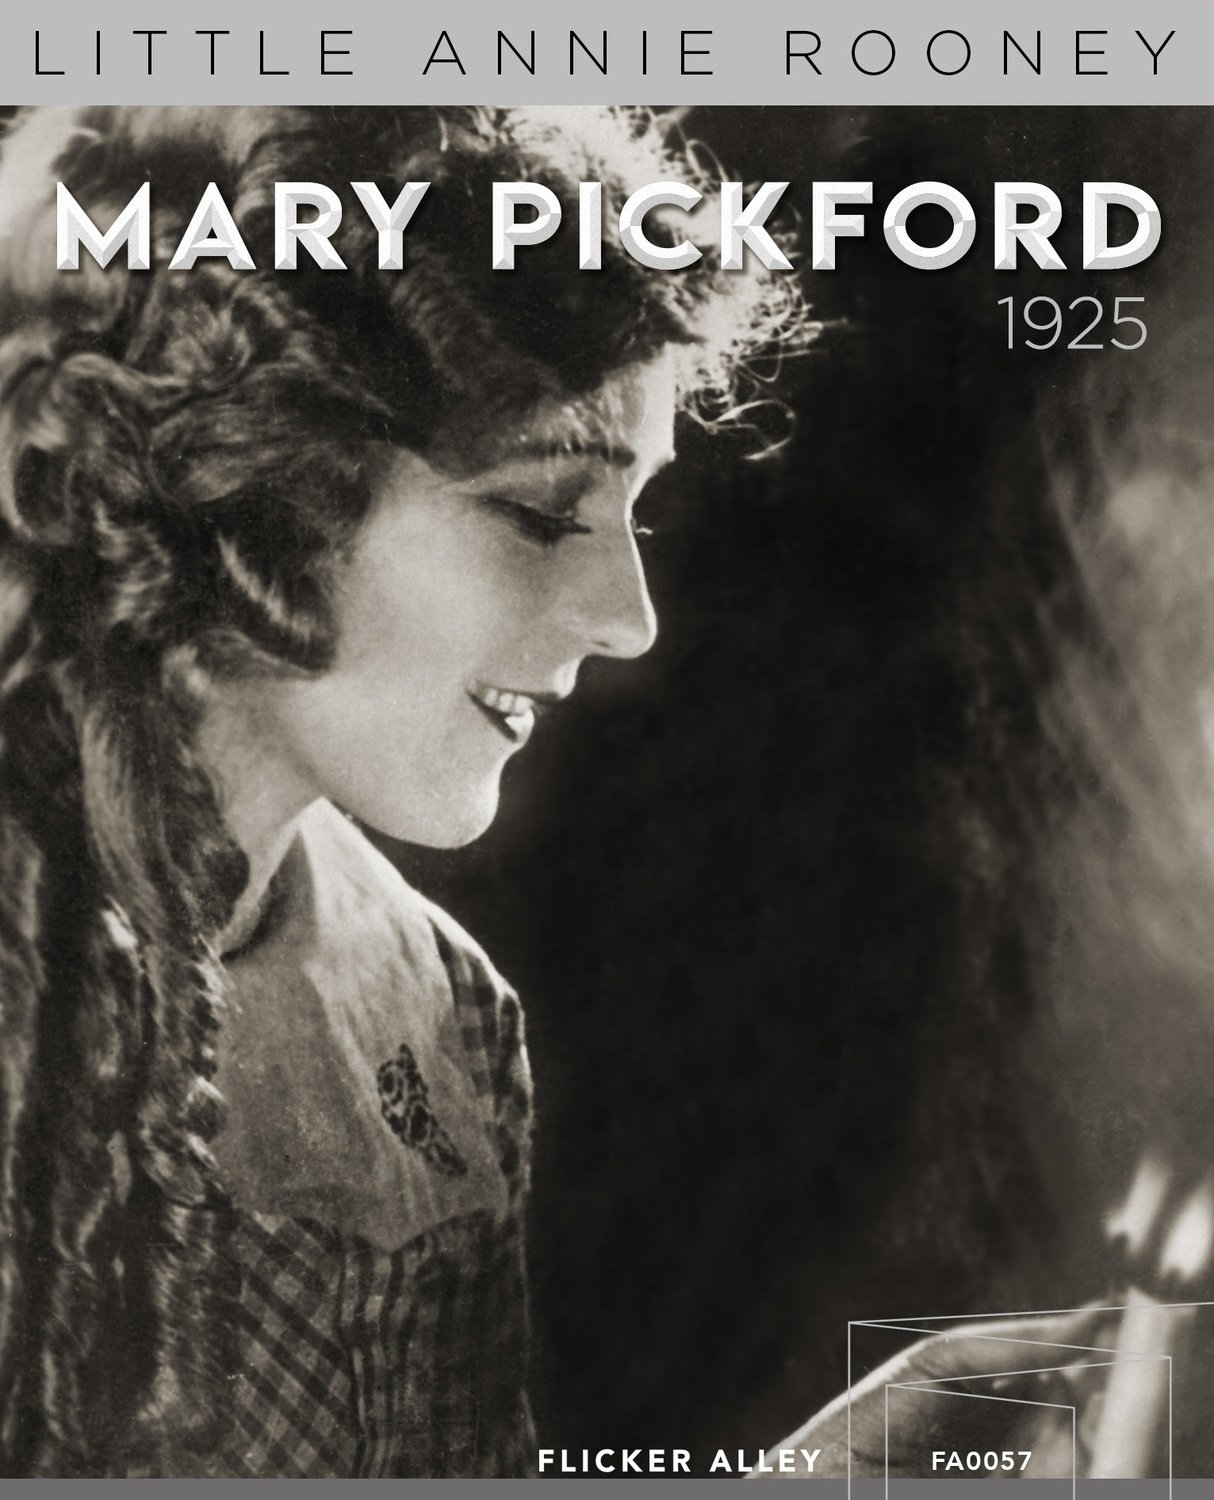 Little Annie Rooney MARY PICKFORD 1925 COVER.jpg